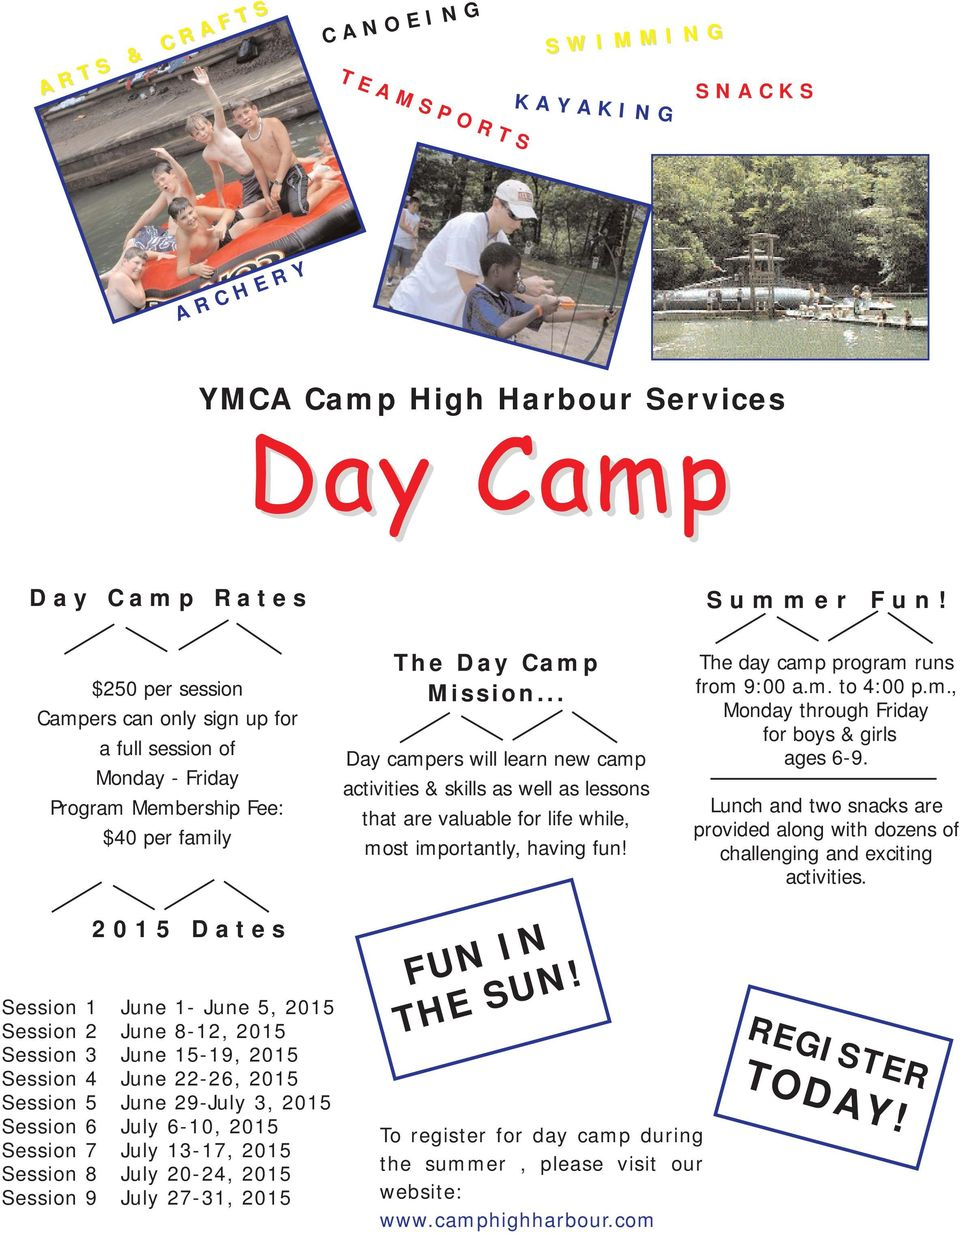 .. Day campers will learn new camp activities & skills as well as lessons that are valuable for life while, most importantly, having fun! The day camp program runs from 9:00 a.m. to 4:00 p.m., Monday through Friday for boys & girls ages 6-9.